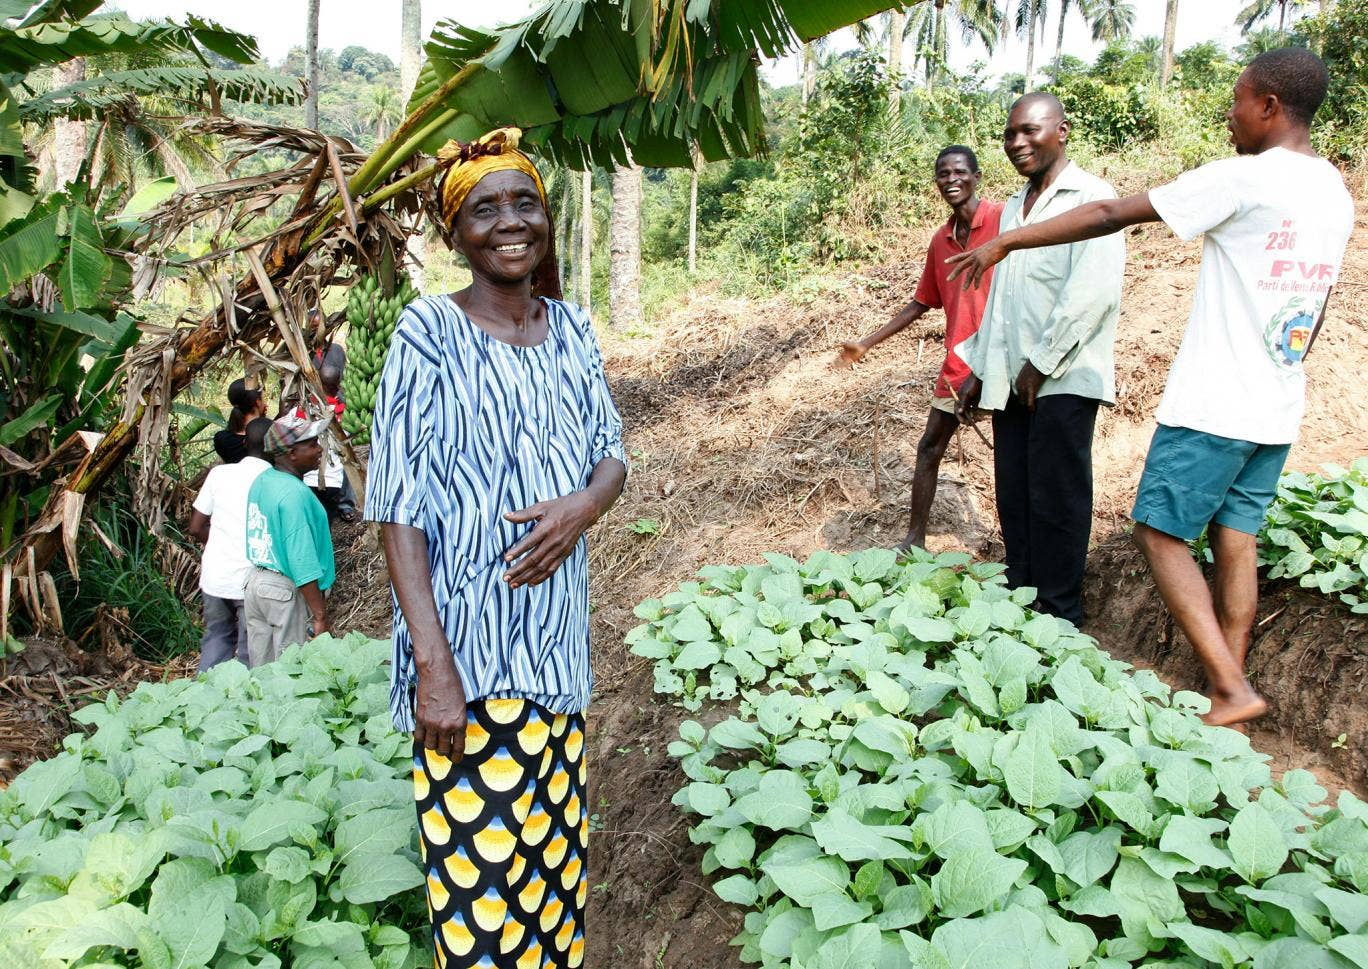 Members of the community farming group at work in their community fields near the town of Masi Manimba, Bandundu Province, DRC.